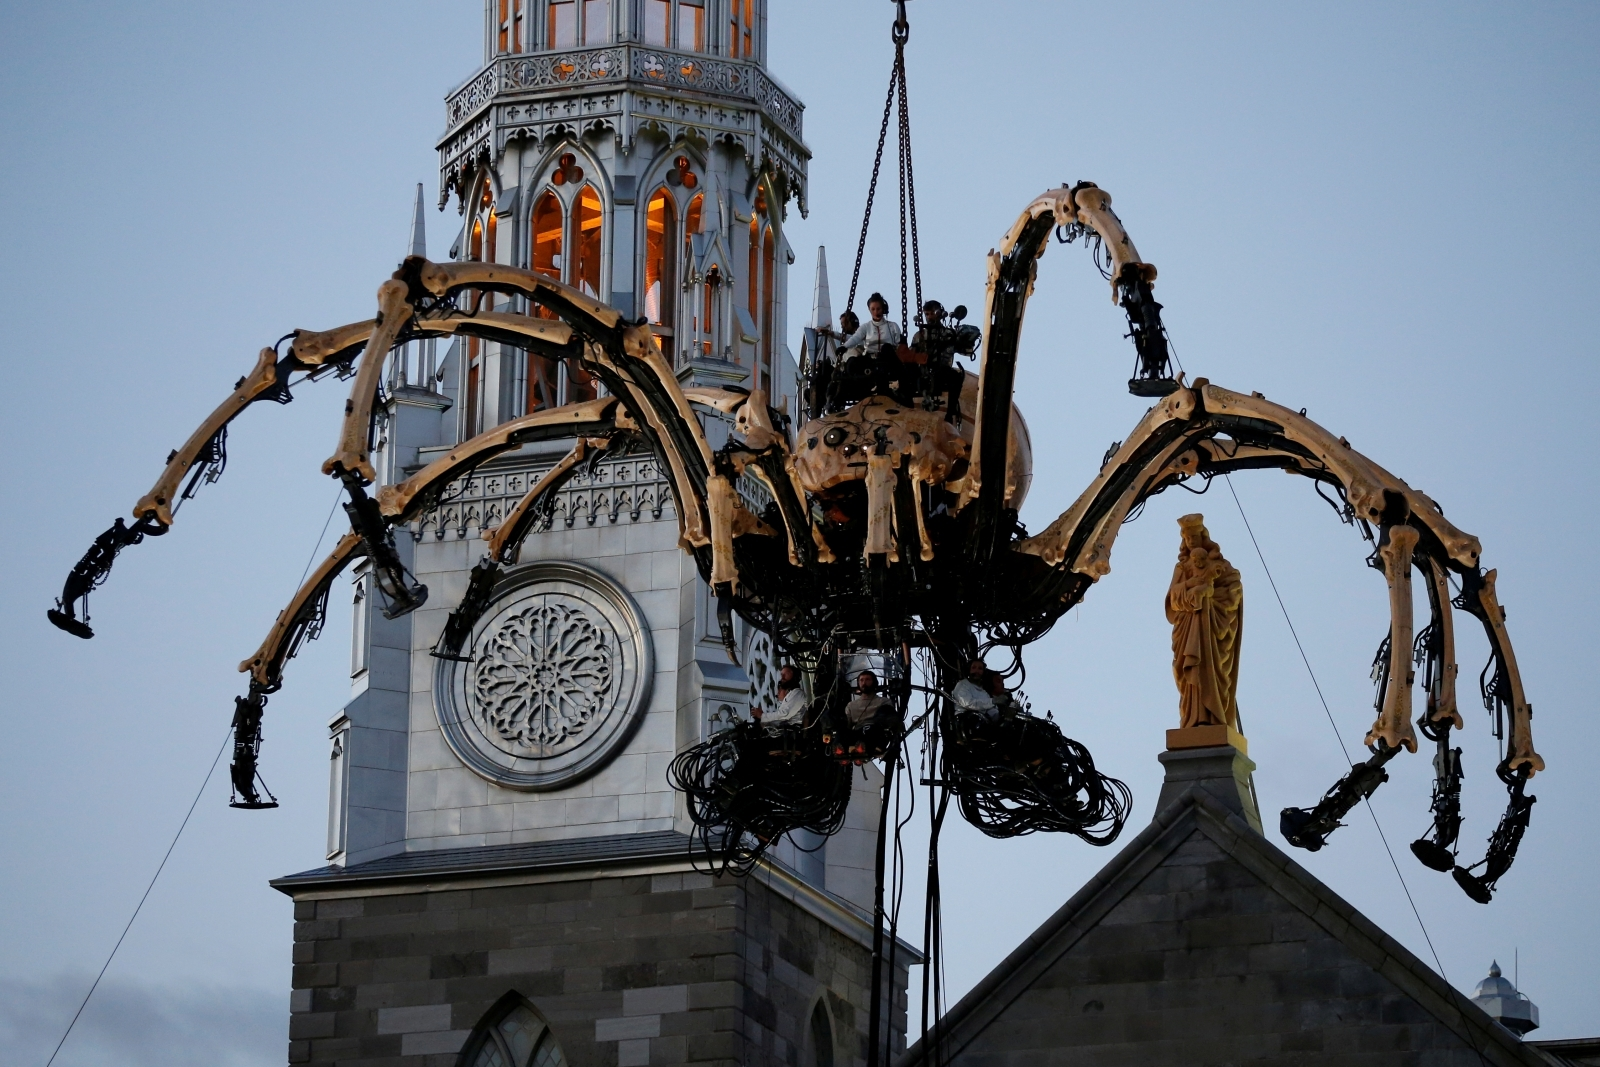 Sacrilegious Giant Robot Spider Mounted On Notre Dame